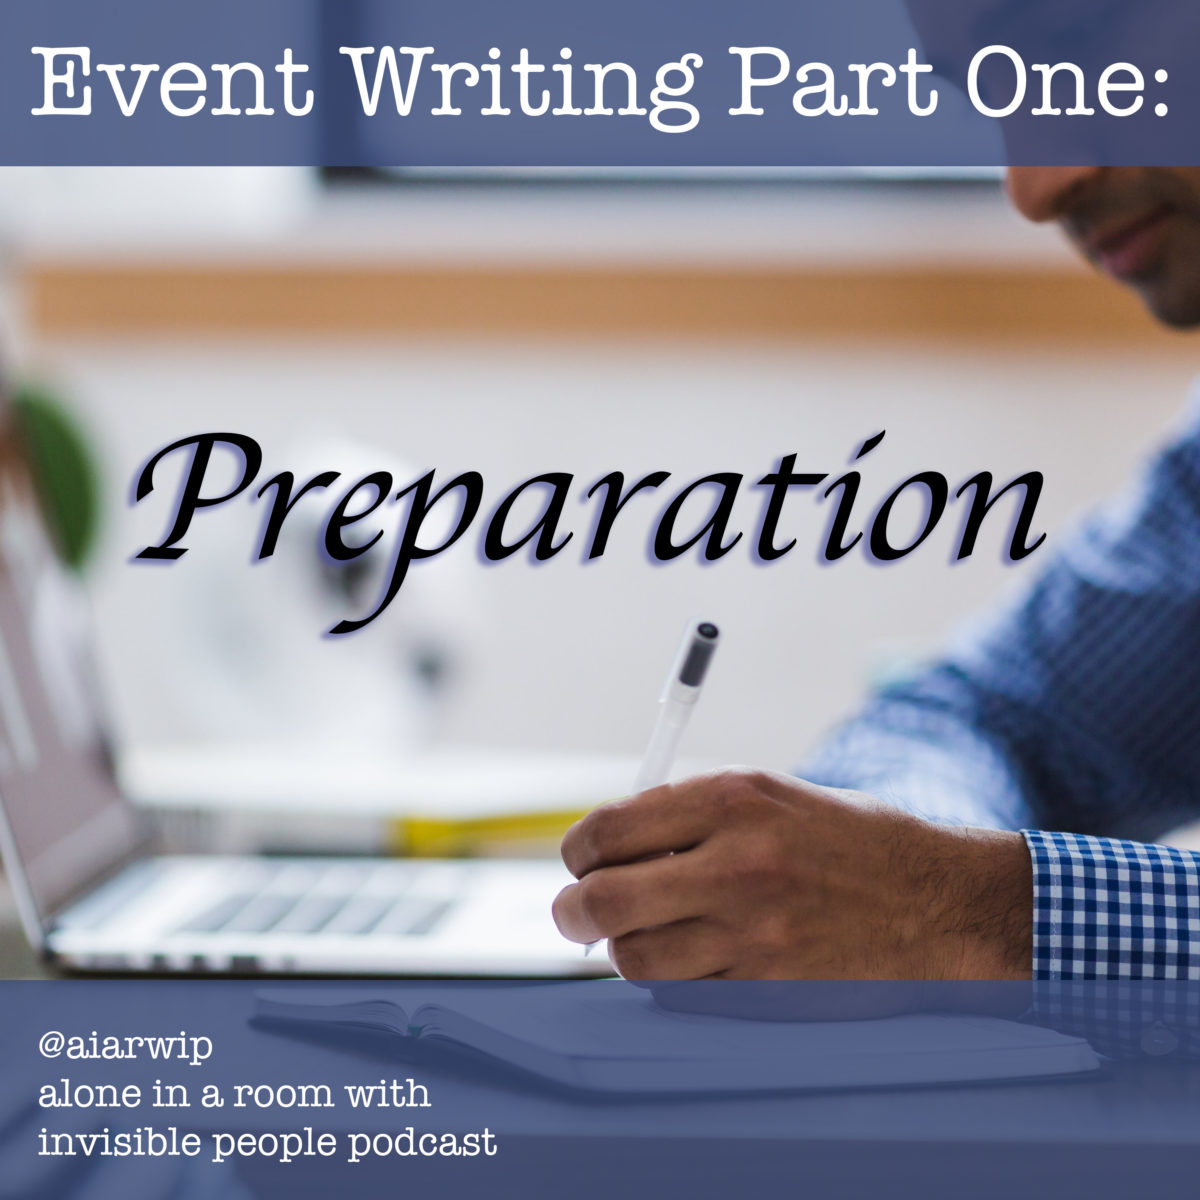 Episode 48: Event Writing Part One: Preparation